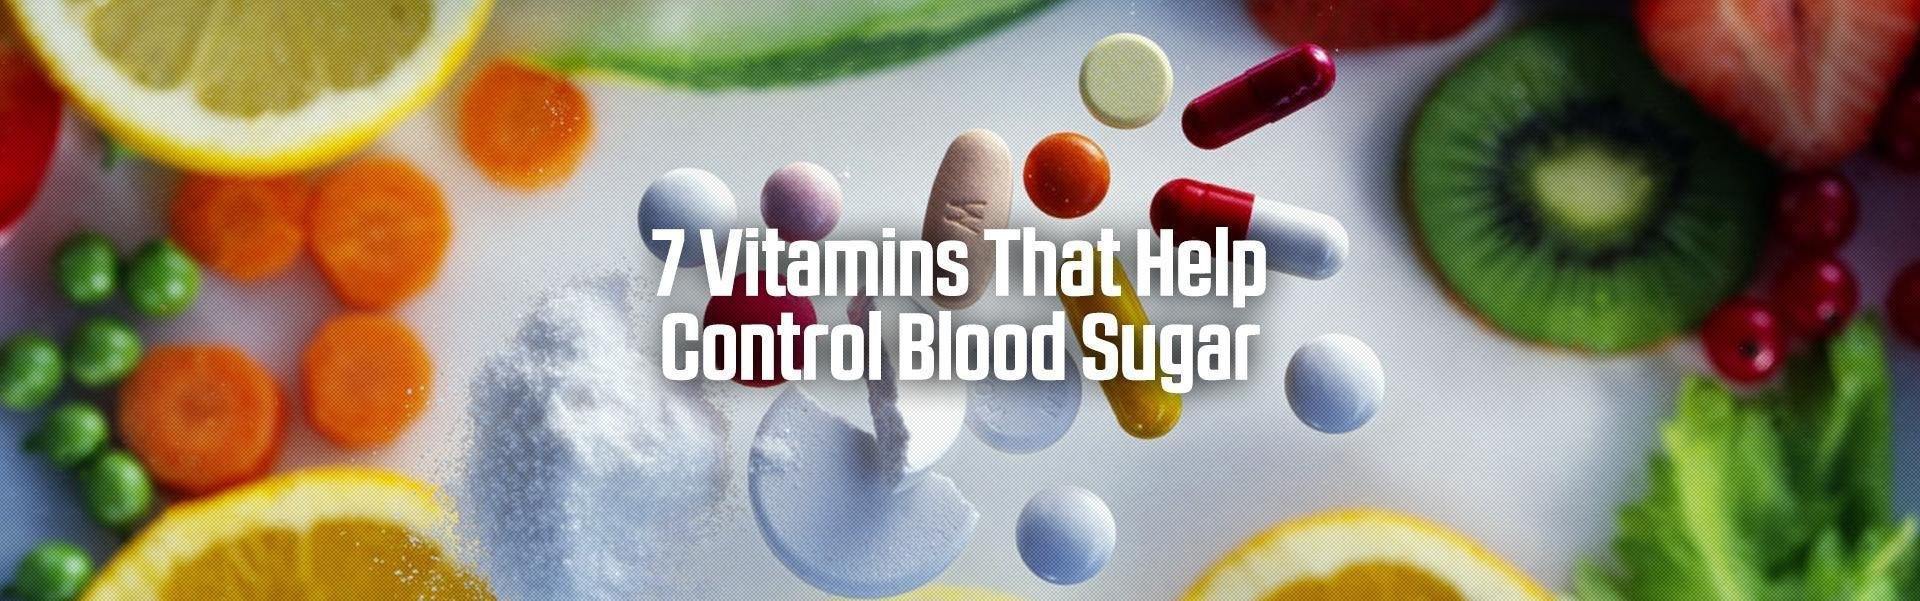 7 Vitamins That Help Control Blood Sugar